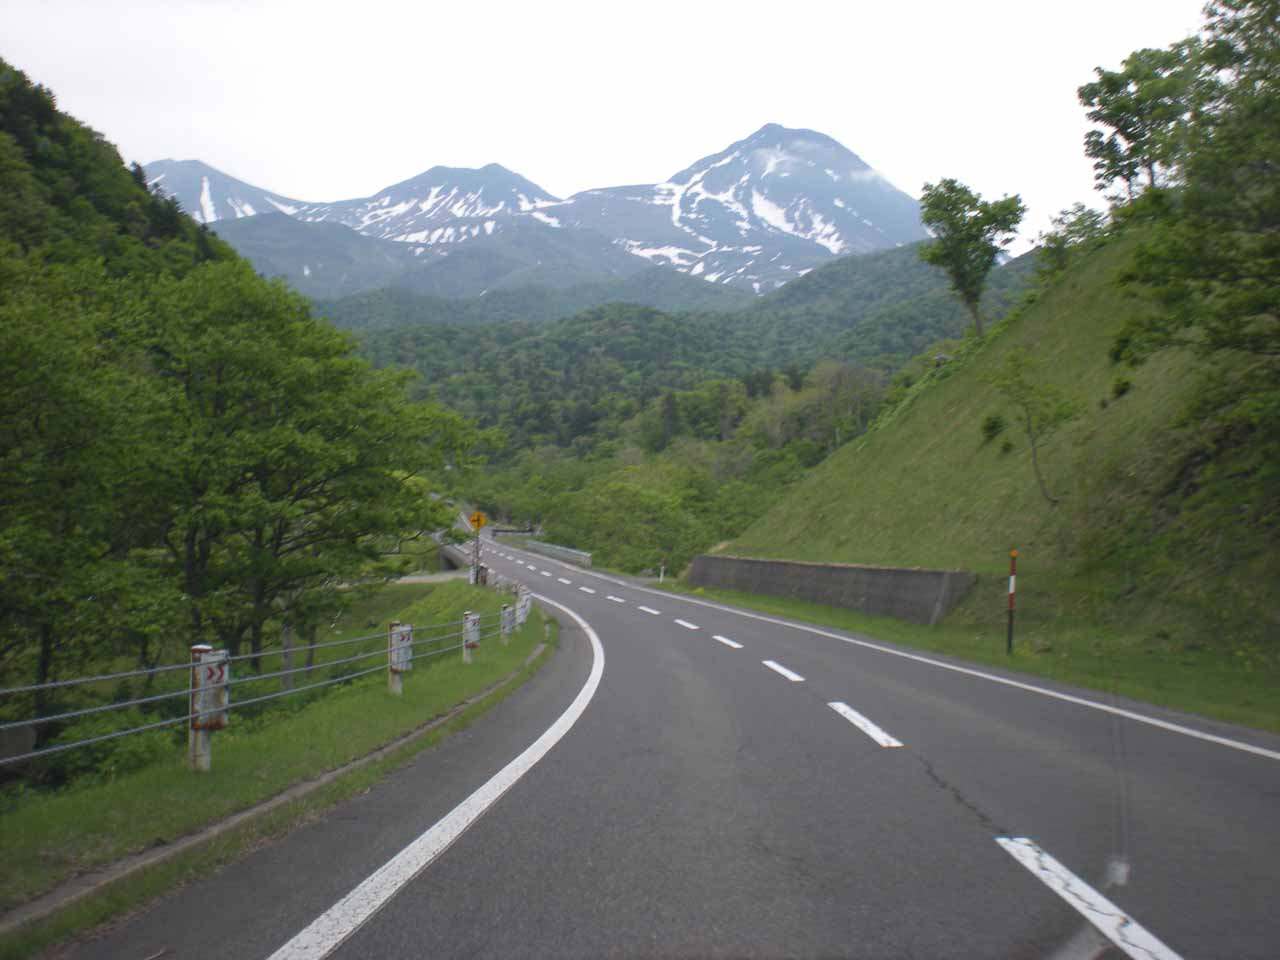 The road to Shiretoko National Park was what we had to take to get to the Shiretoko Goko (5 Lakes), but the turnoff for the Kamuiwakka Waterfall was on the way